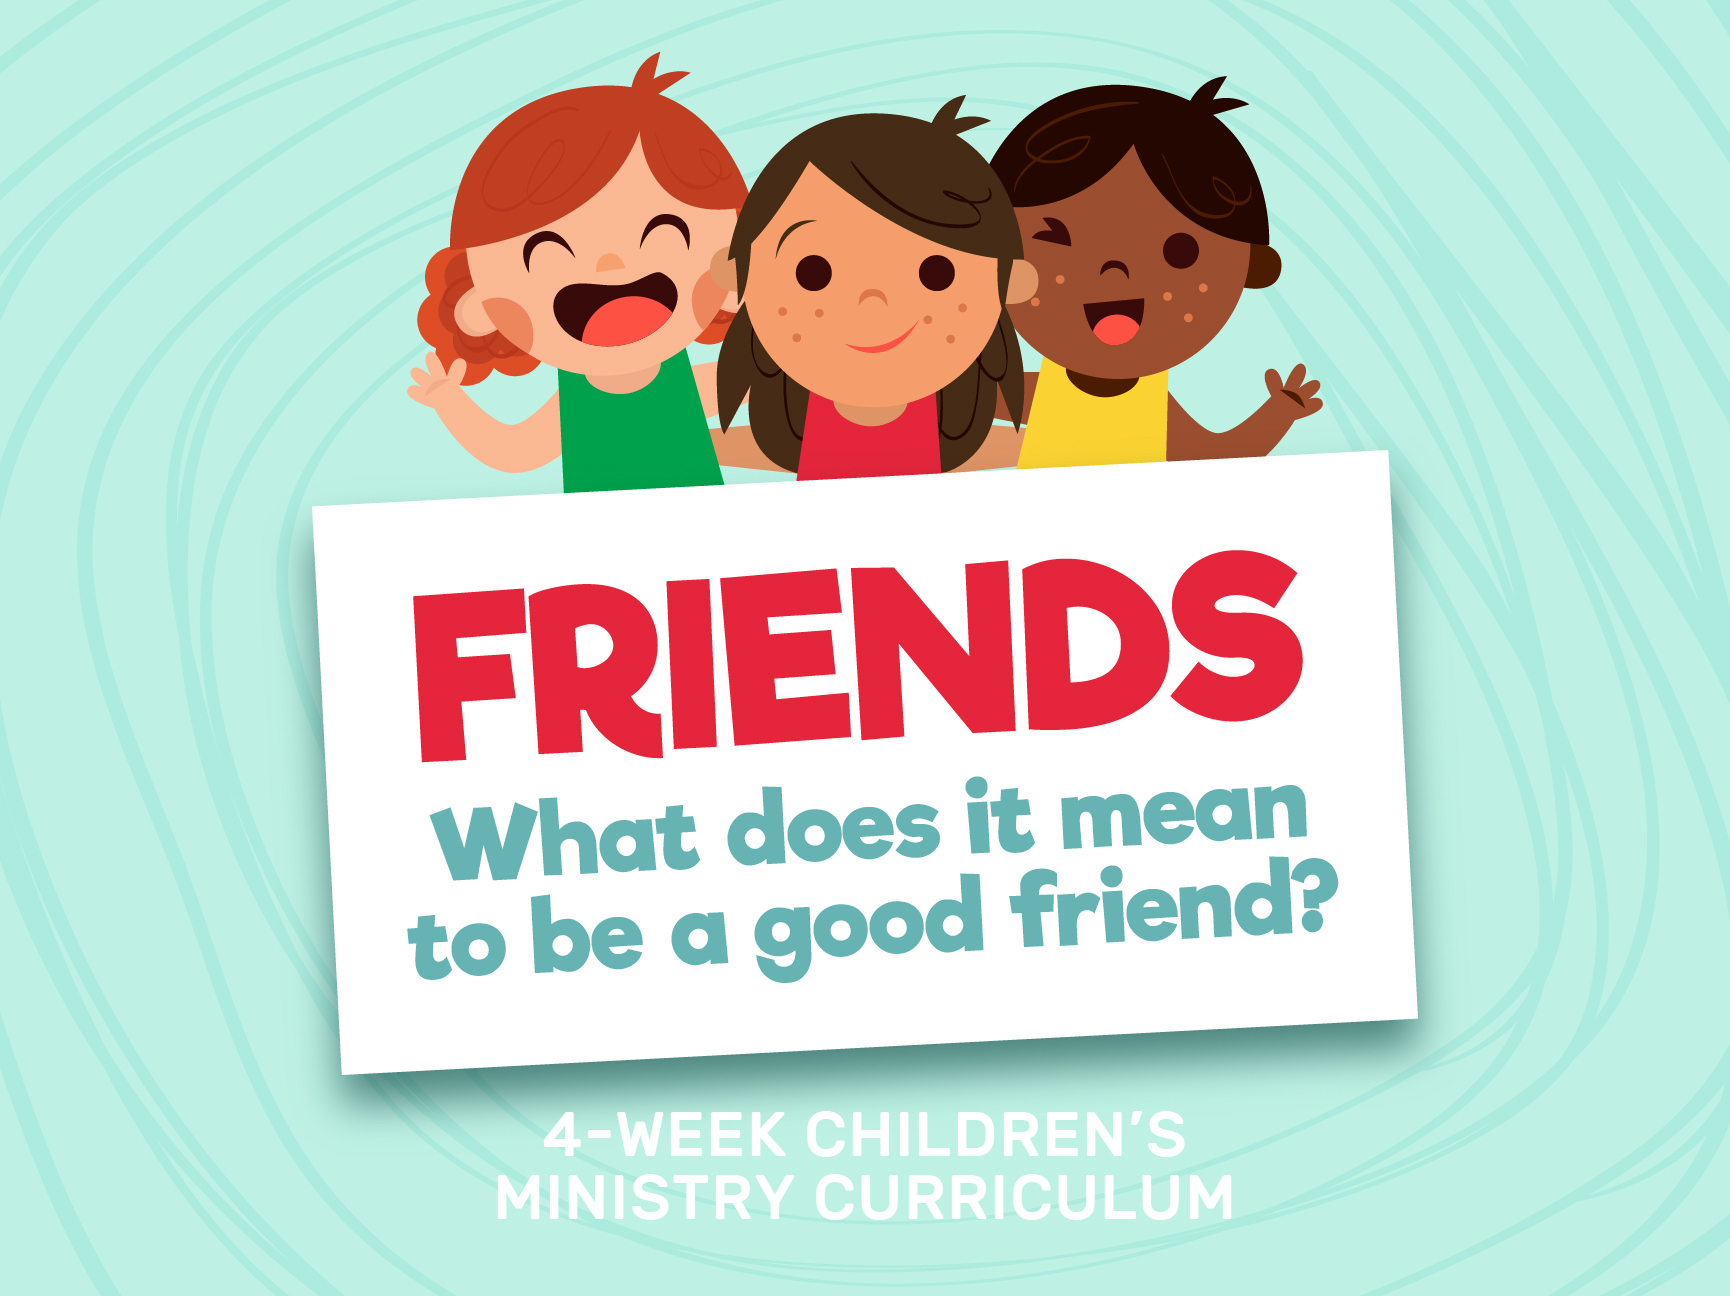 BEST FRIENDS: 4 WEEK CURRICULUM